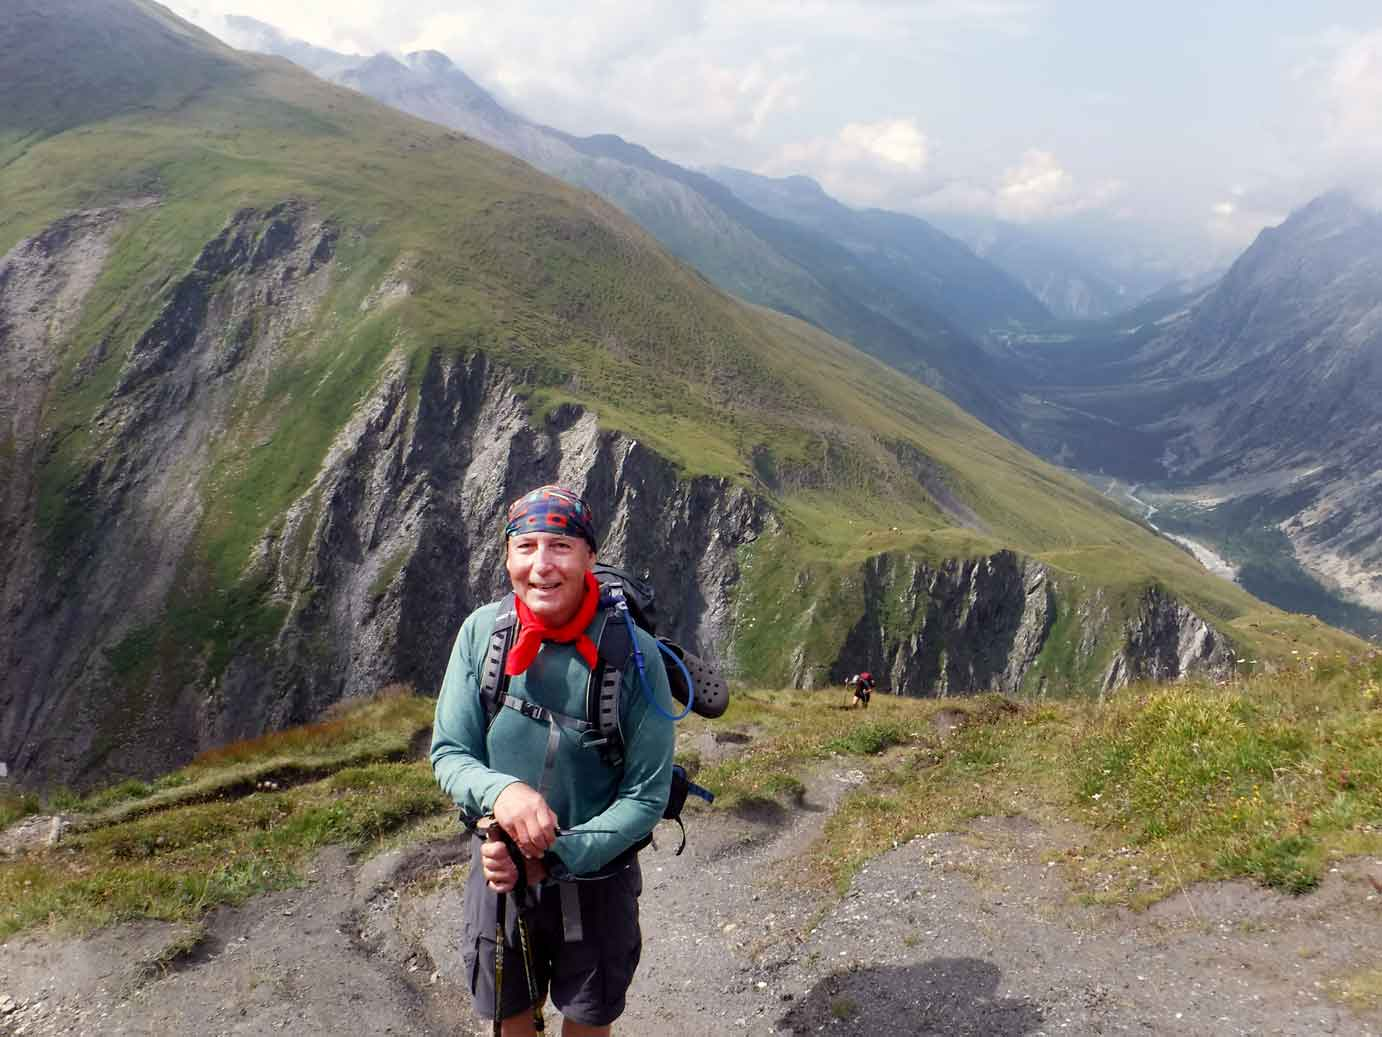 Trekking the Tour du Mont Blanc